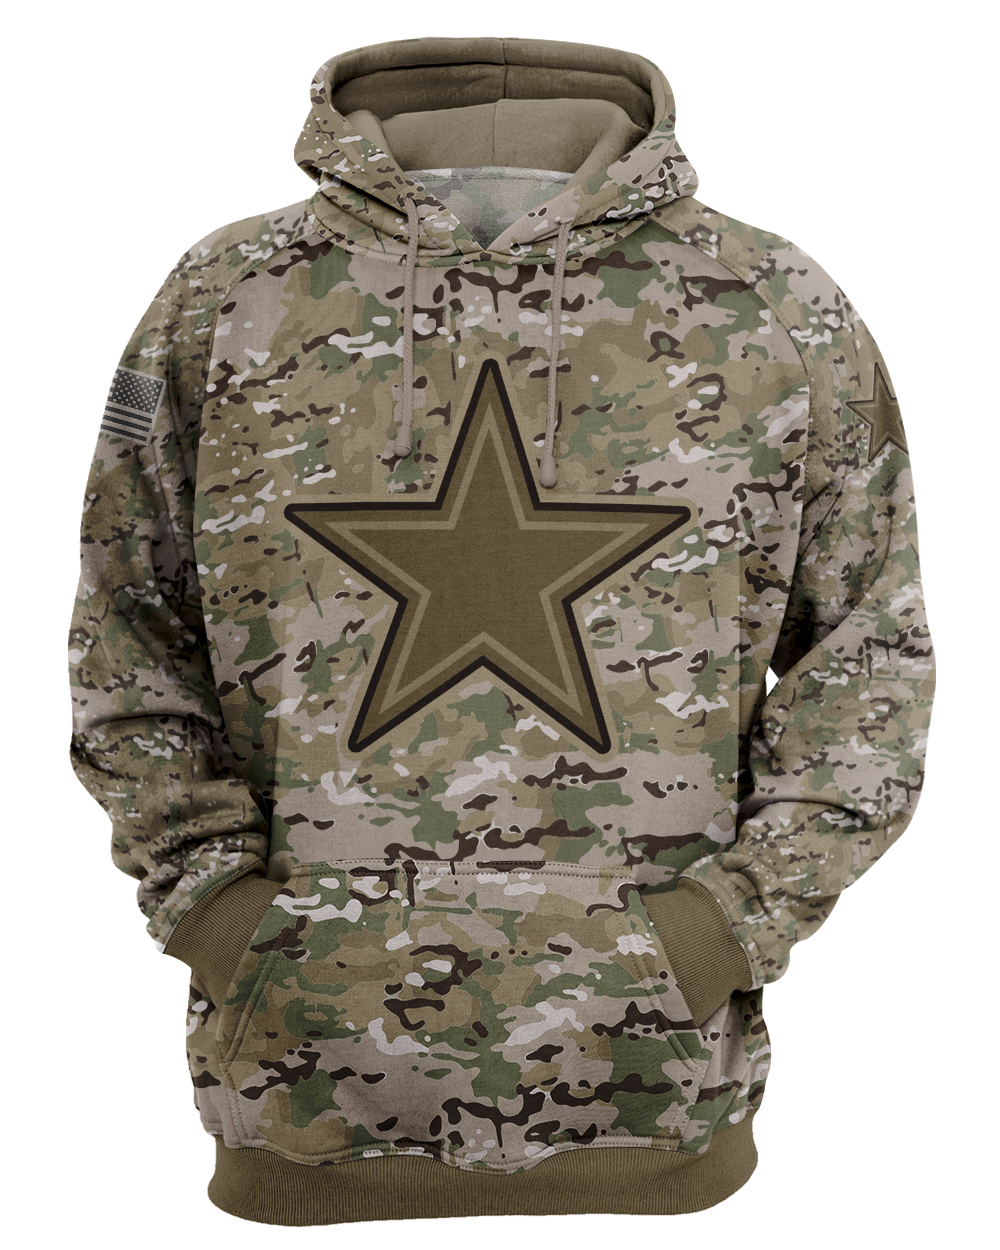 Dallas cowboys camo style all over